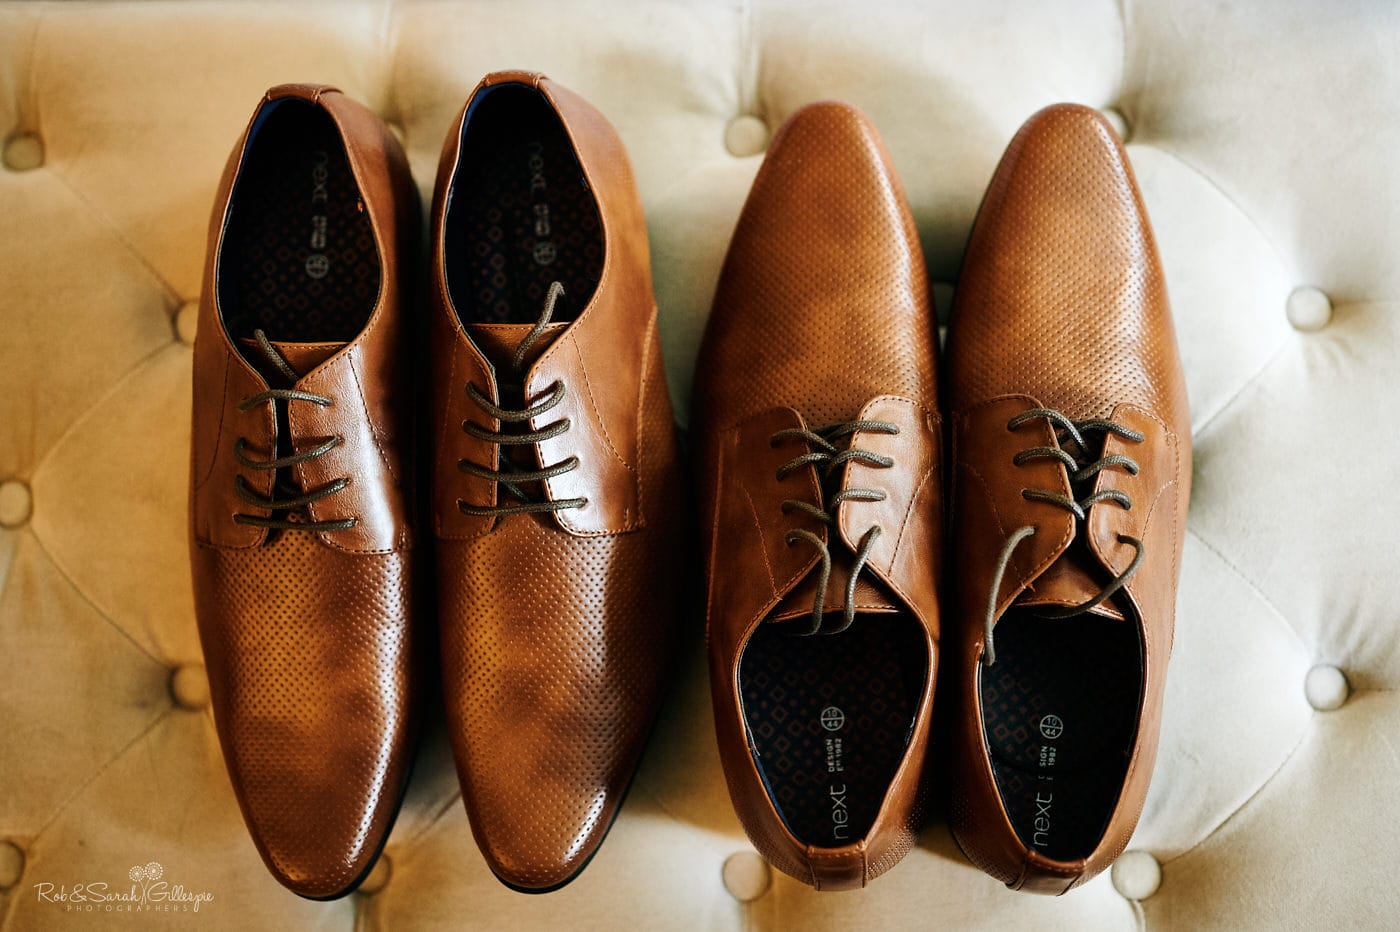 Two pairs of mens shoes for wedding